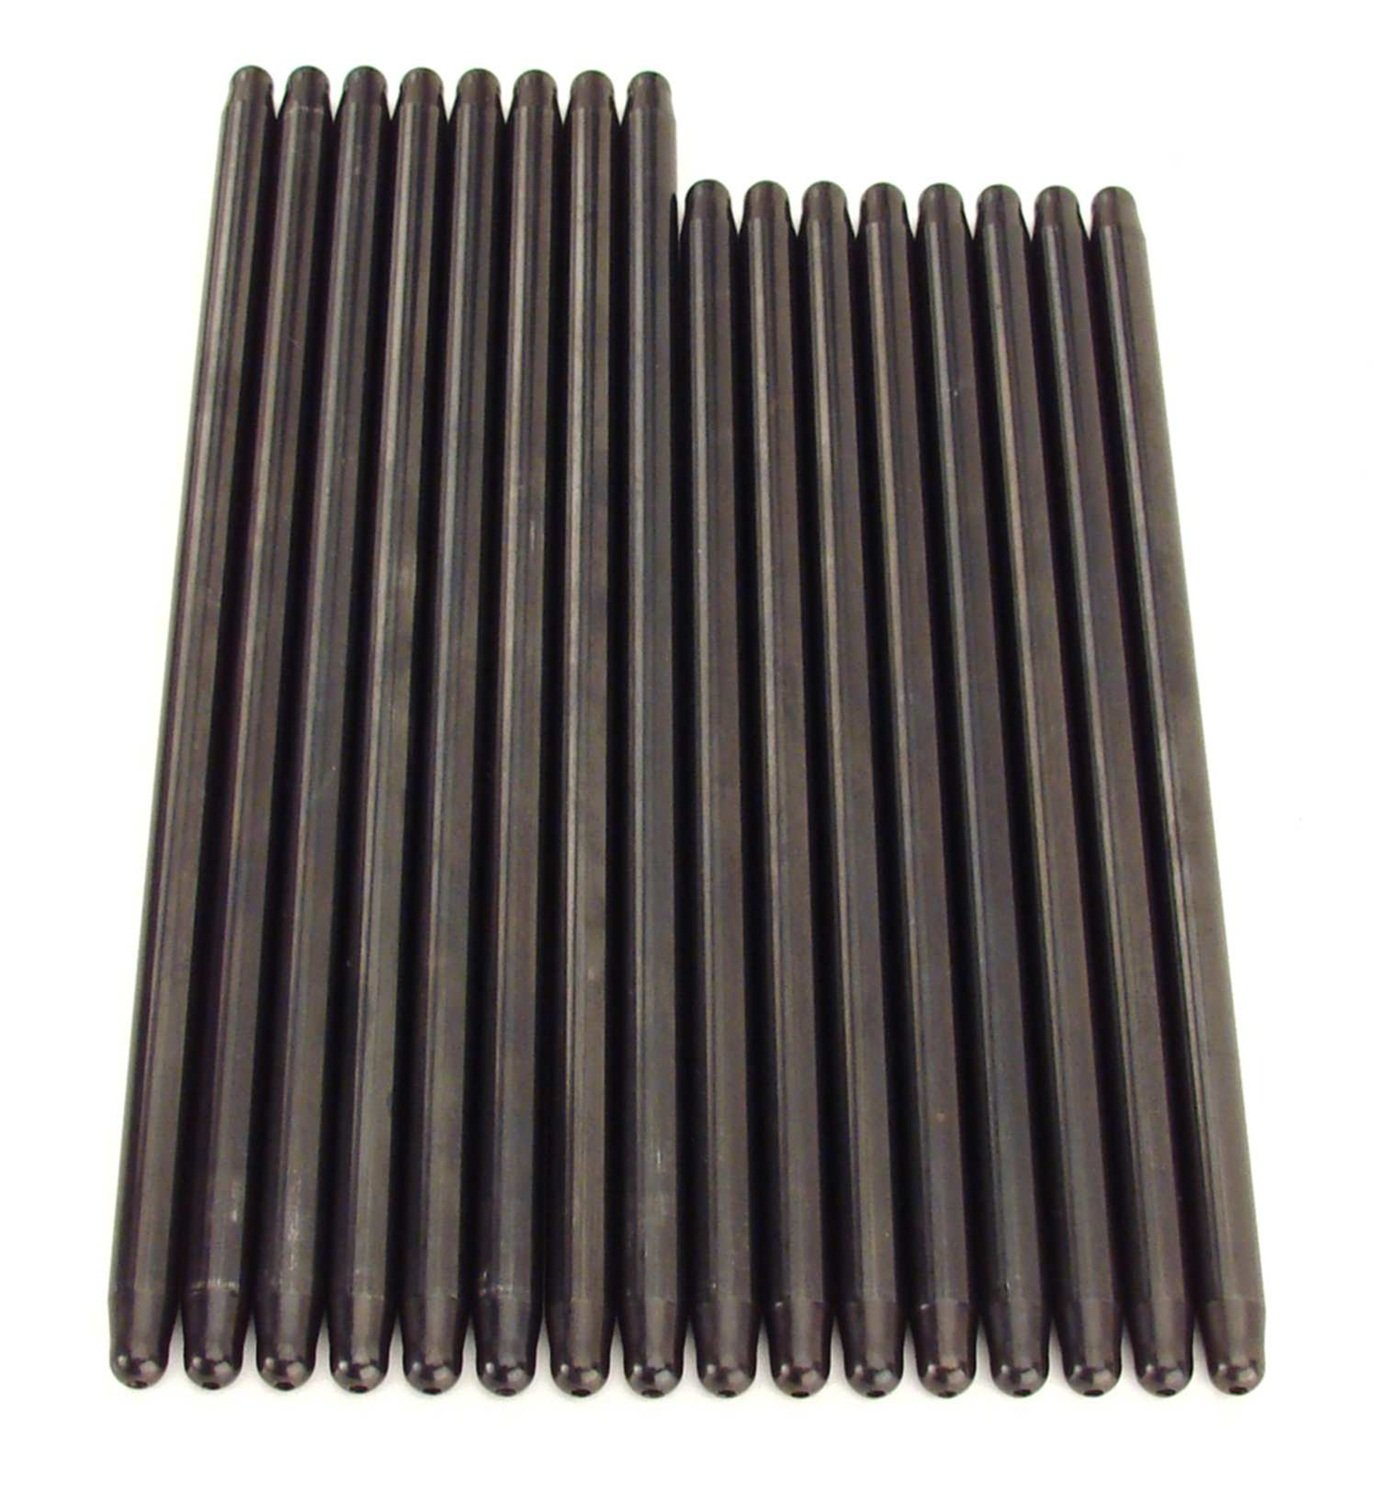 Competition Cams 7154-16 Magnum Pushrods for Big Block Chevy, 3/8' Diameter, 8.280' Intake Length, 9.250' Exhaust Length 3/8 Diameter 8.280 Intake Length 9.250 Exhaust Length nobrandname